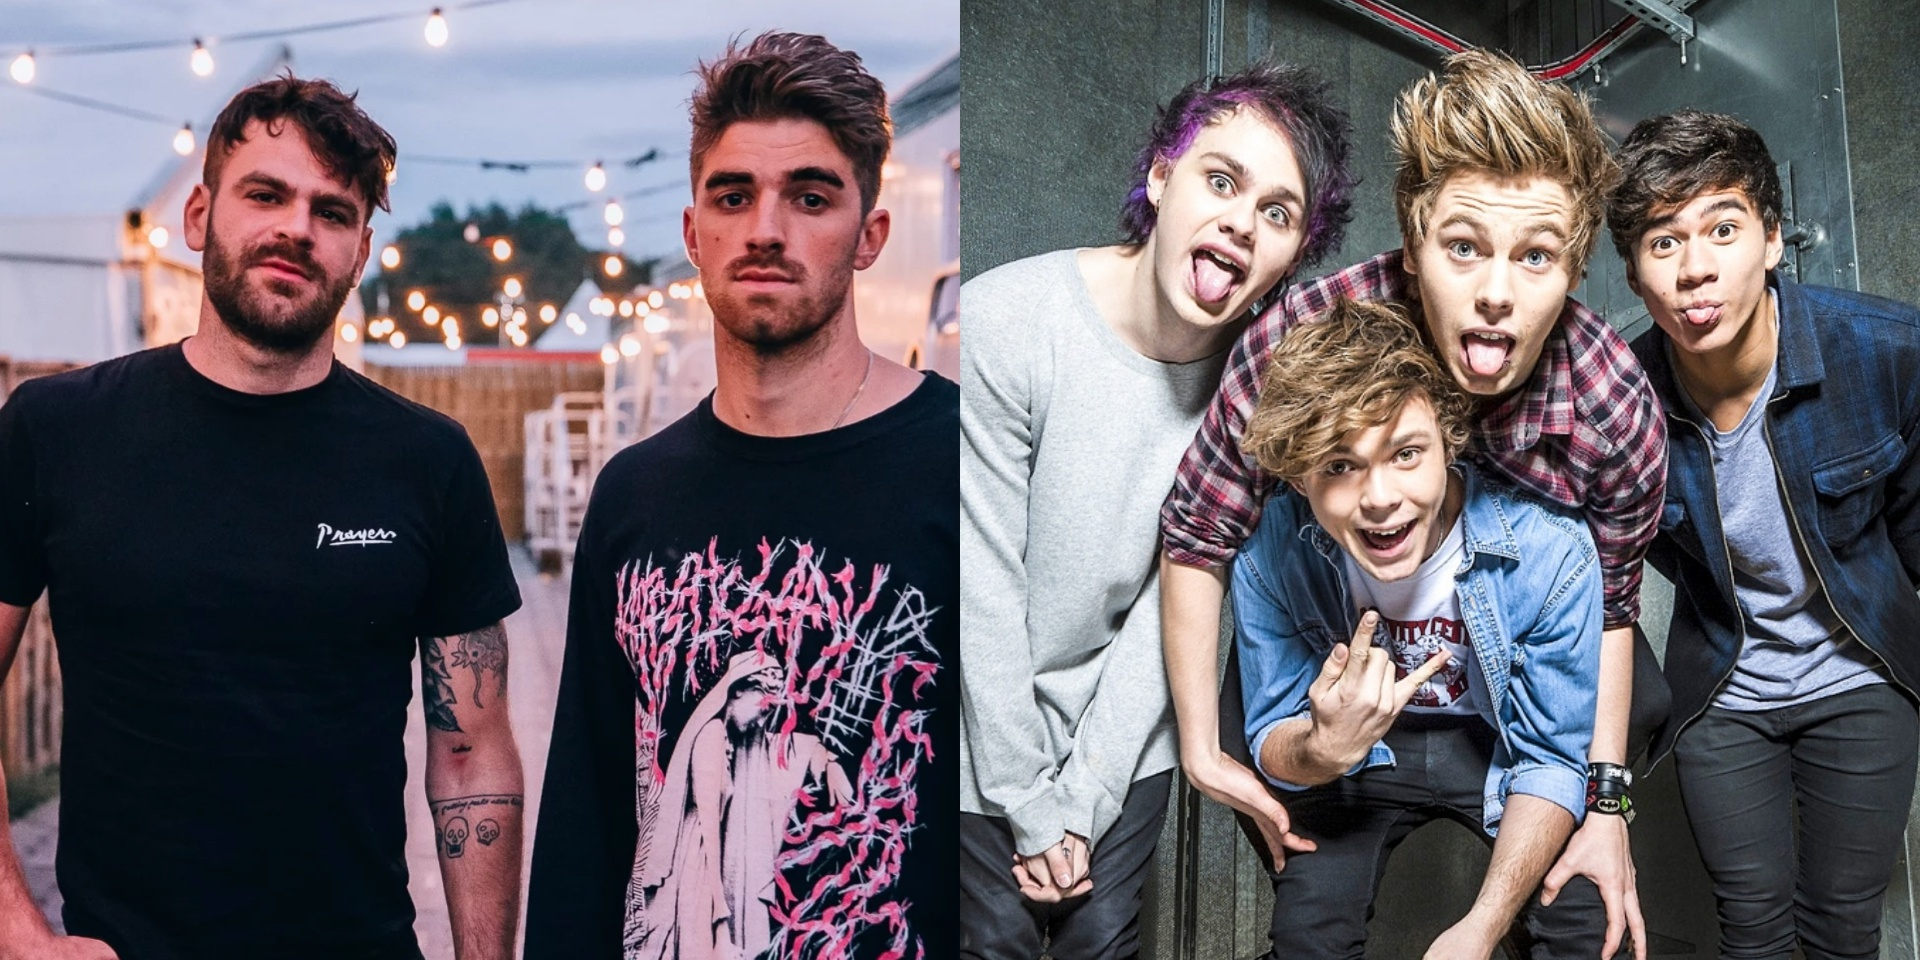 The Chainsmokers and 5 Seconds Of Summer battle each other for blazing glory in new music video for 'Who Do You Love' – watch